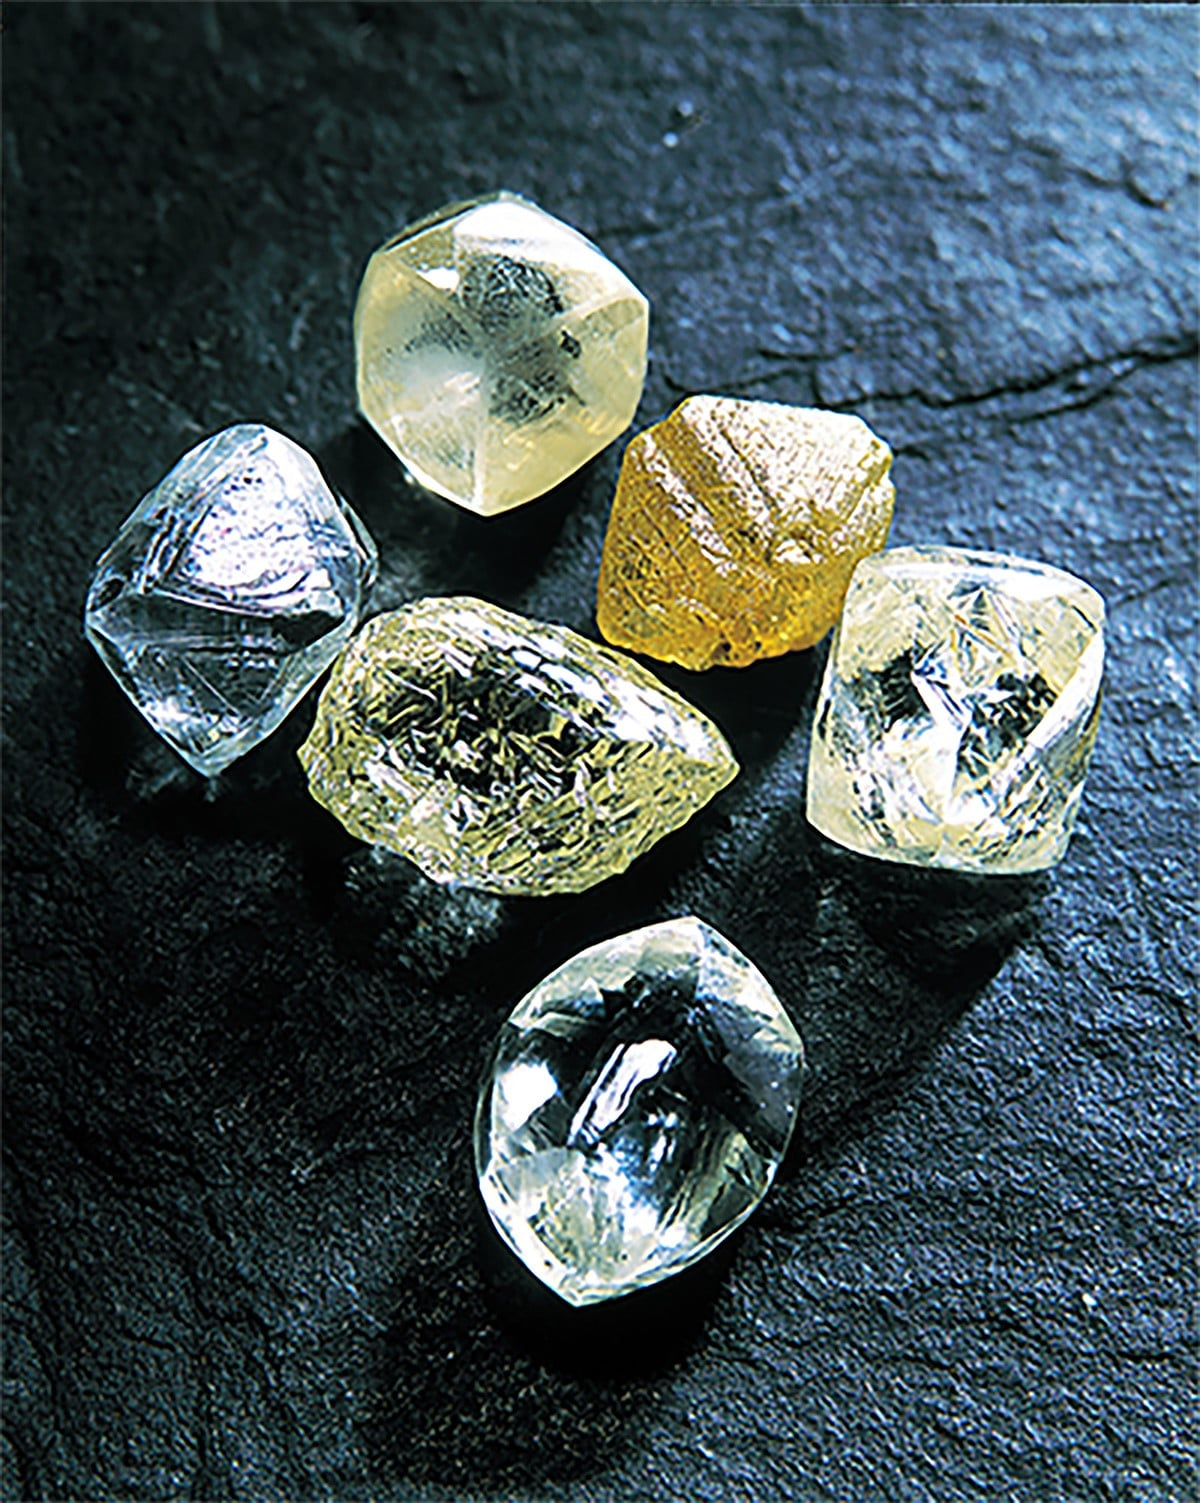 The various rough diamonds that are rarely seen. The shine of the diamonds without cutting and polishing are beautiful.